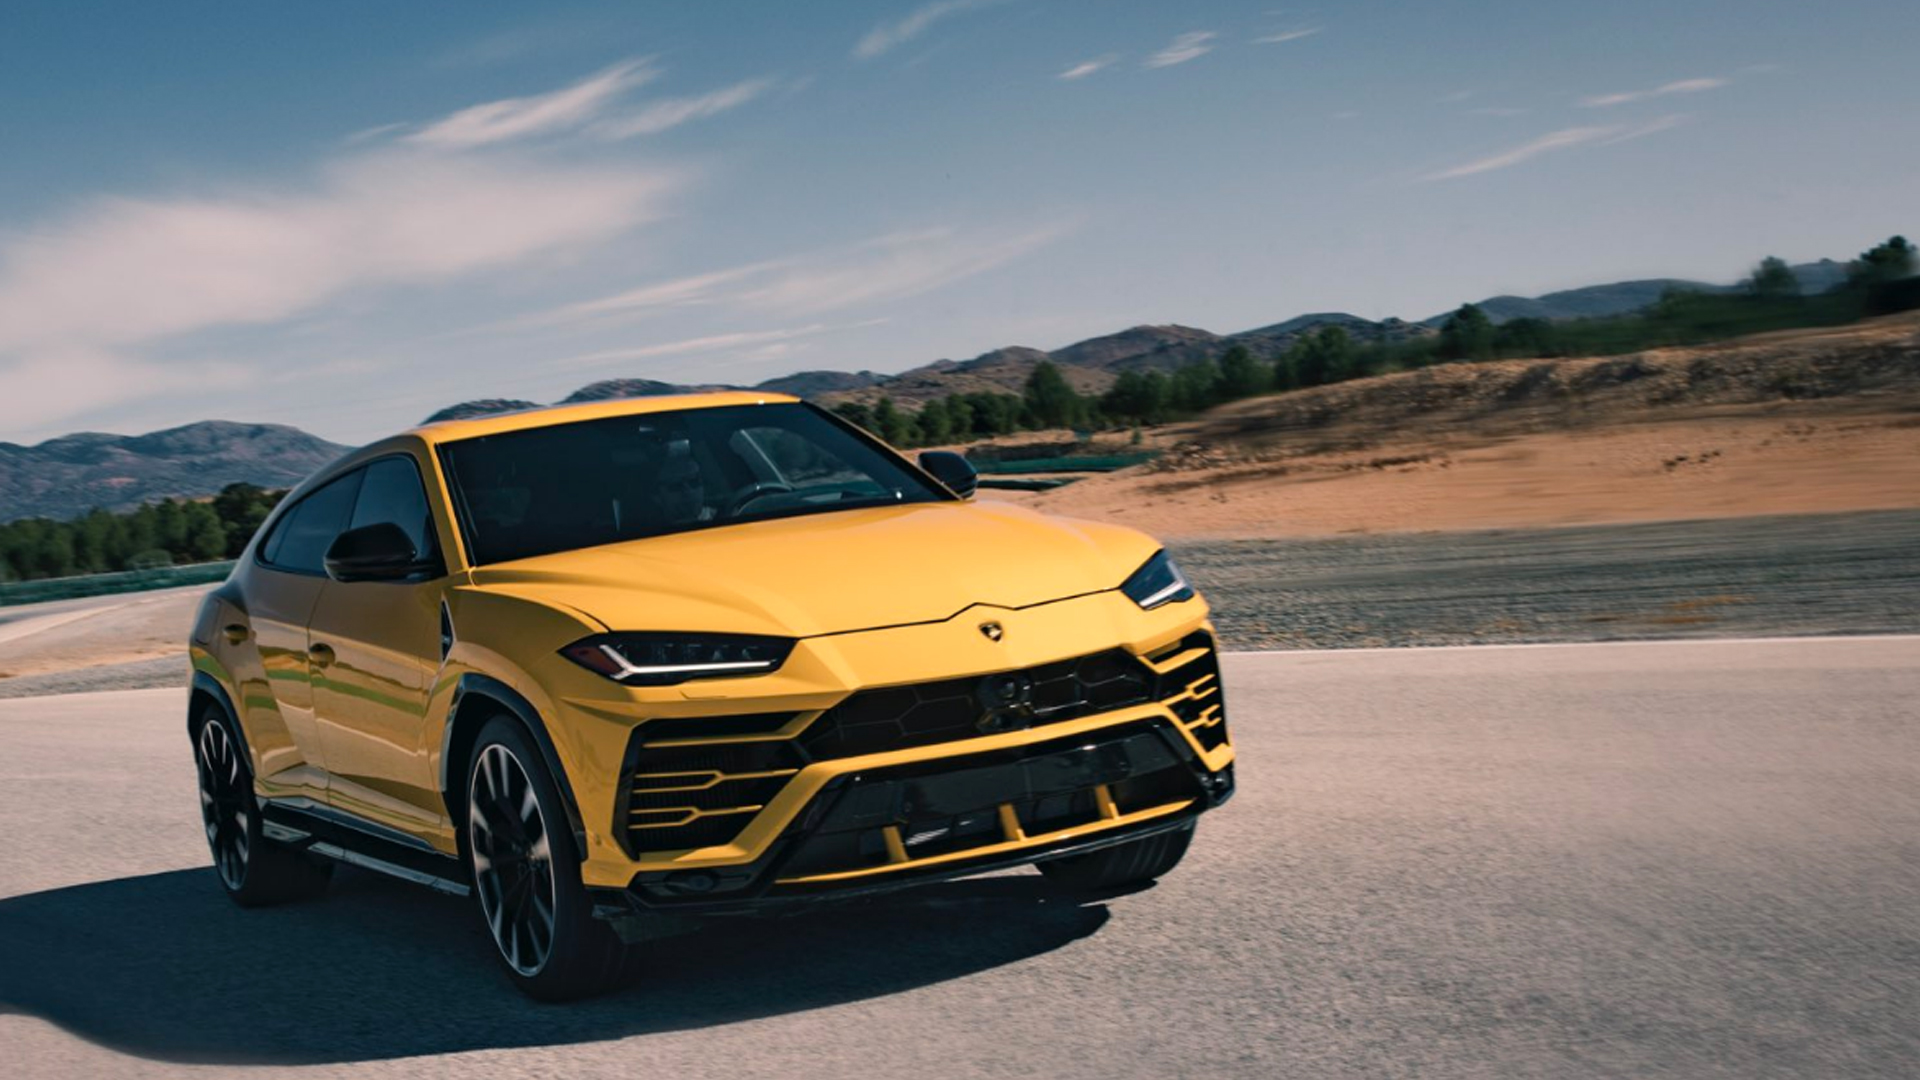 Lamborghini Urus 2018 STD  Price, Mileage, Reviews, Specification, Gallery  Overdrive